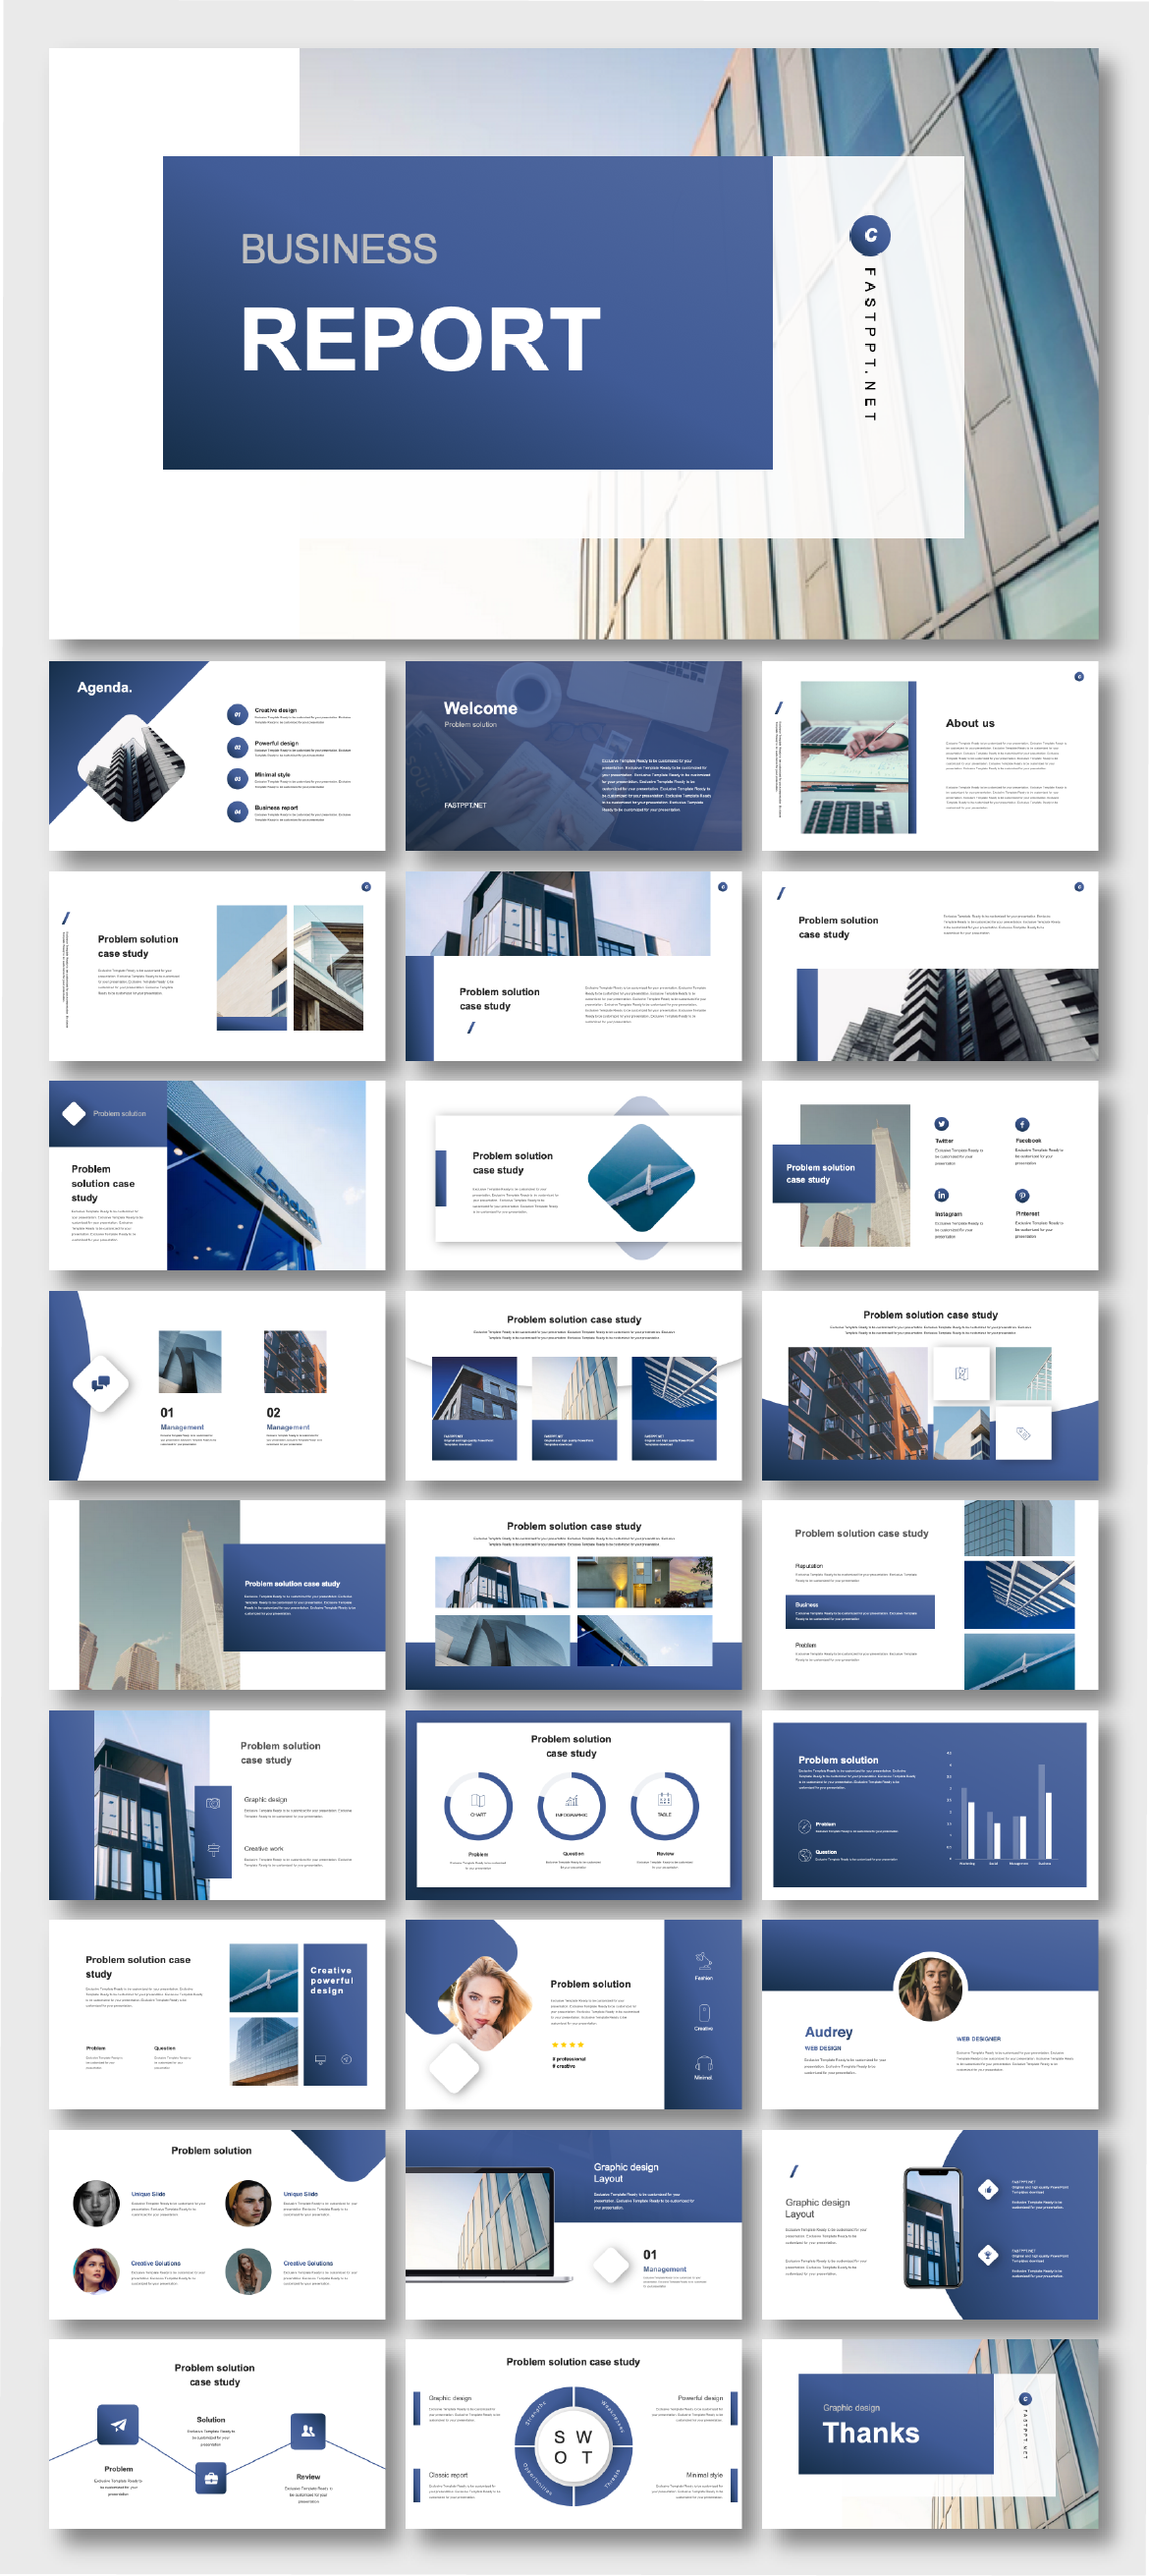 Cool & Modern Blue Business Presentation Template 2020